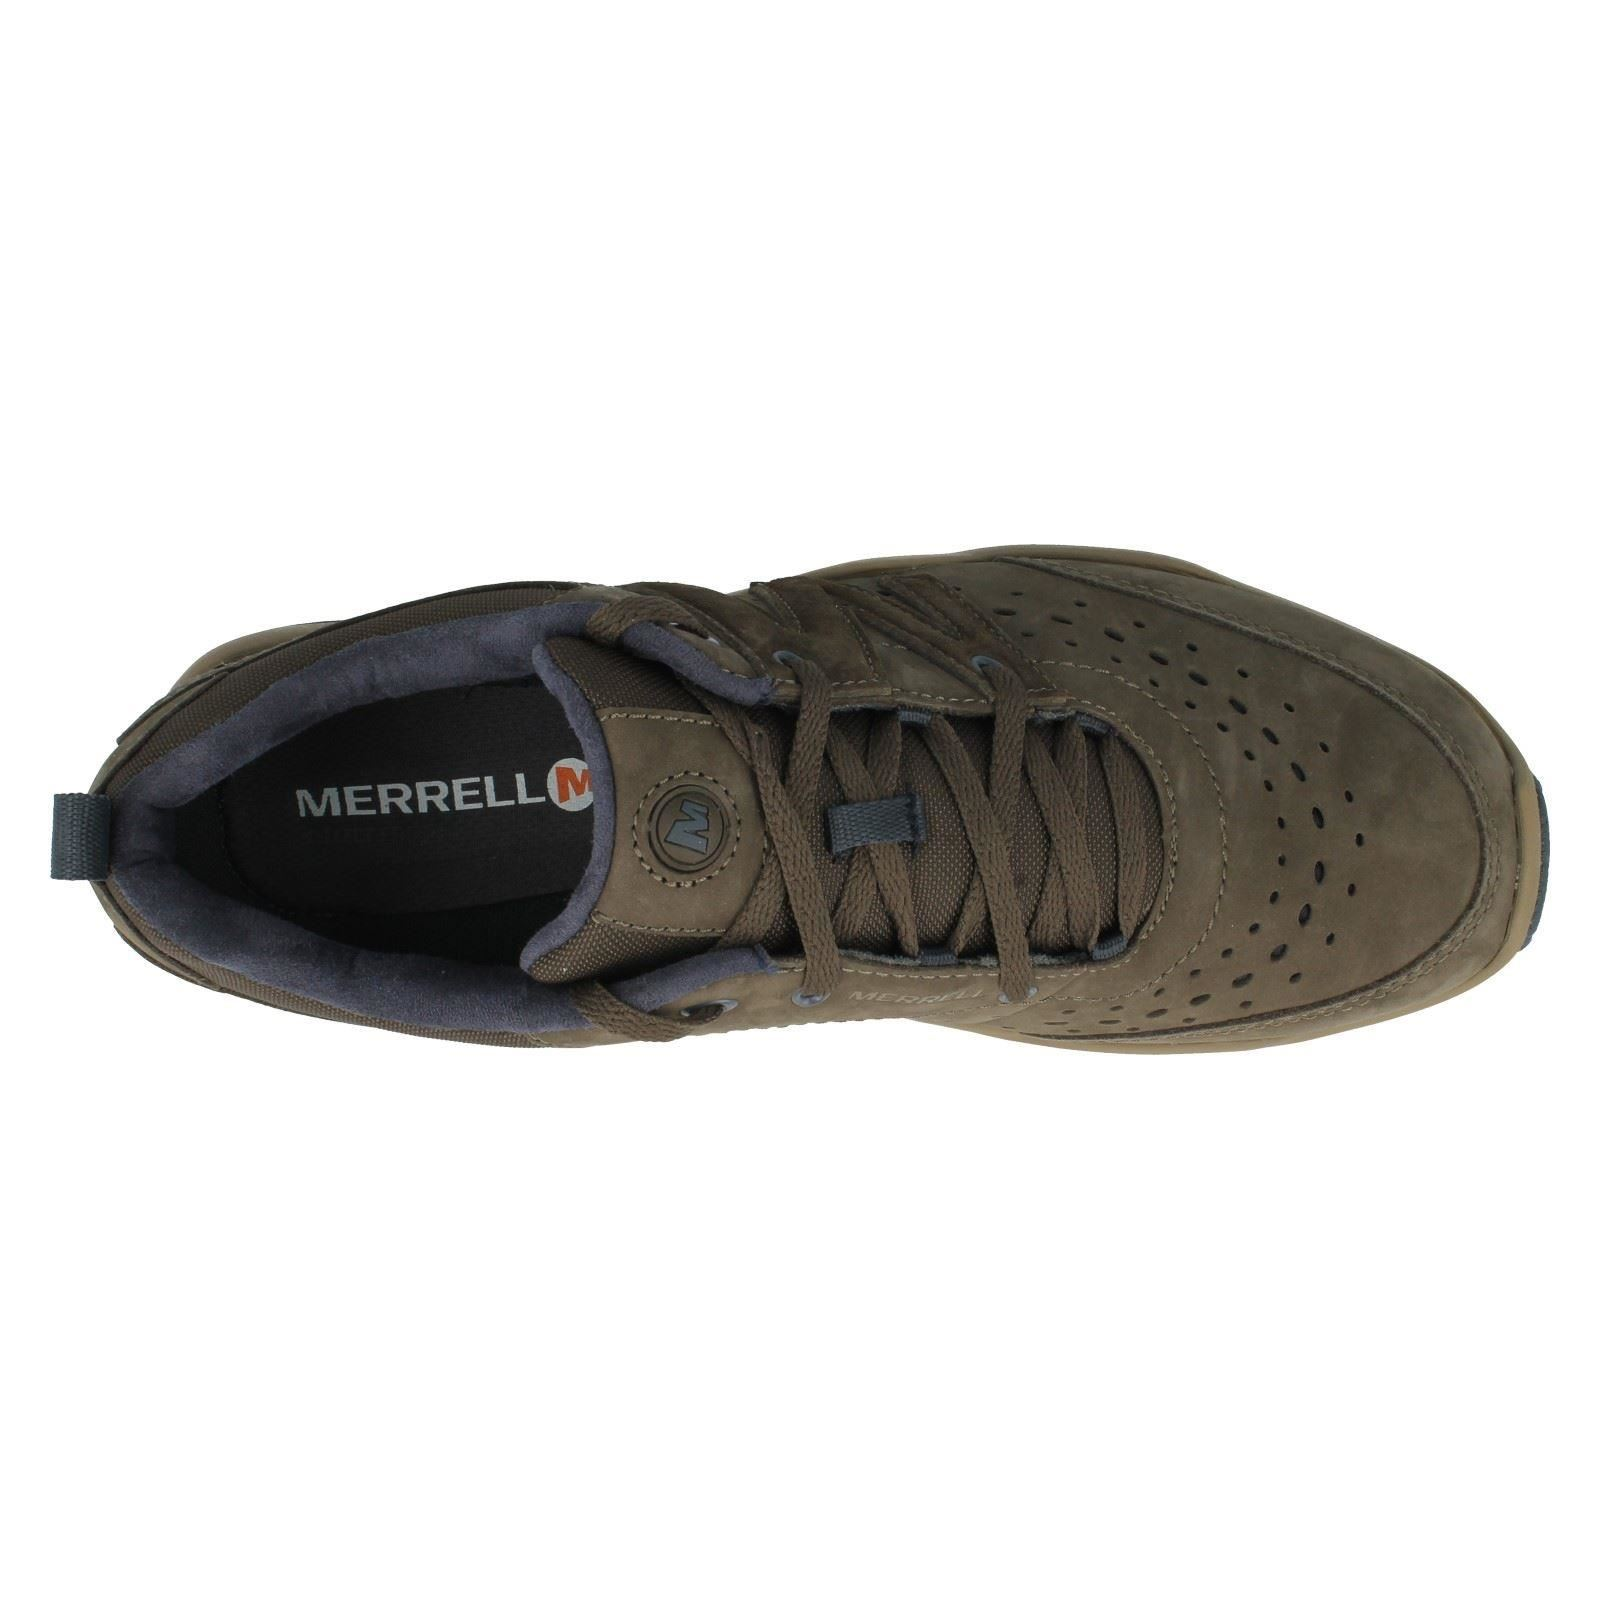 Mens Merrell Casual Style Lace Up Shoes the Style Casual - Skylark Leather f16352